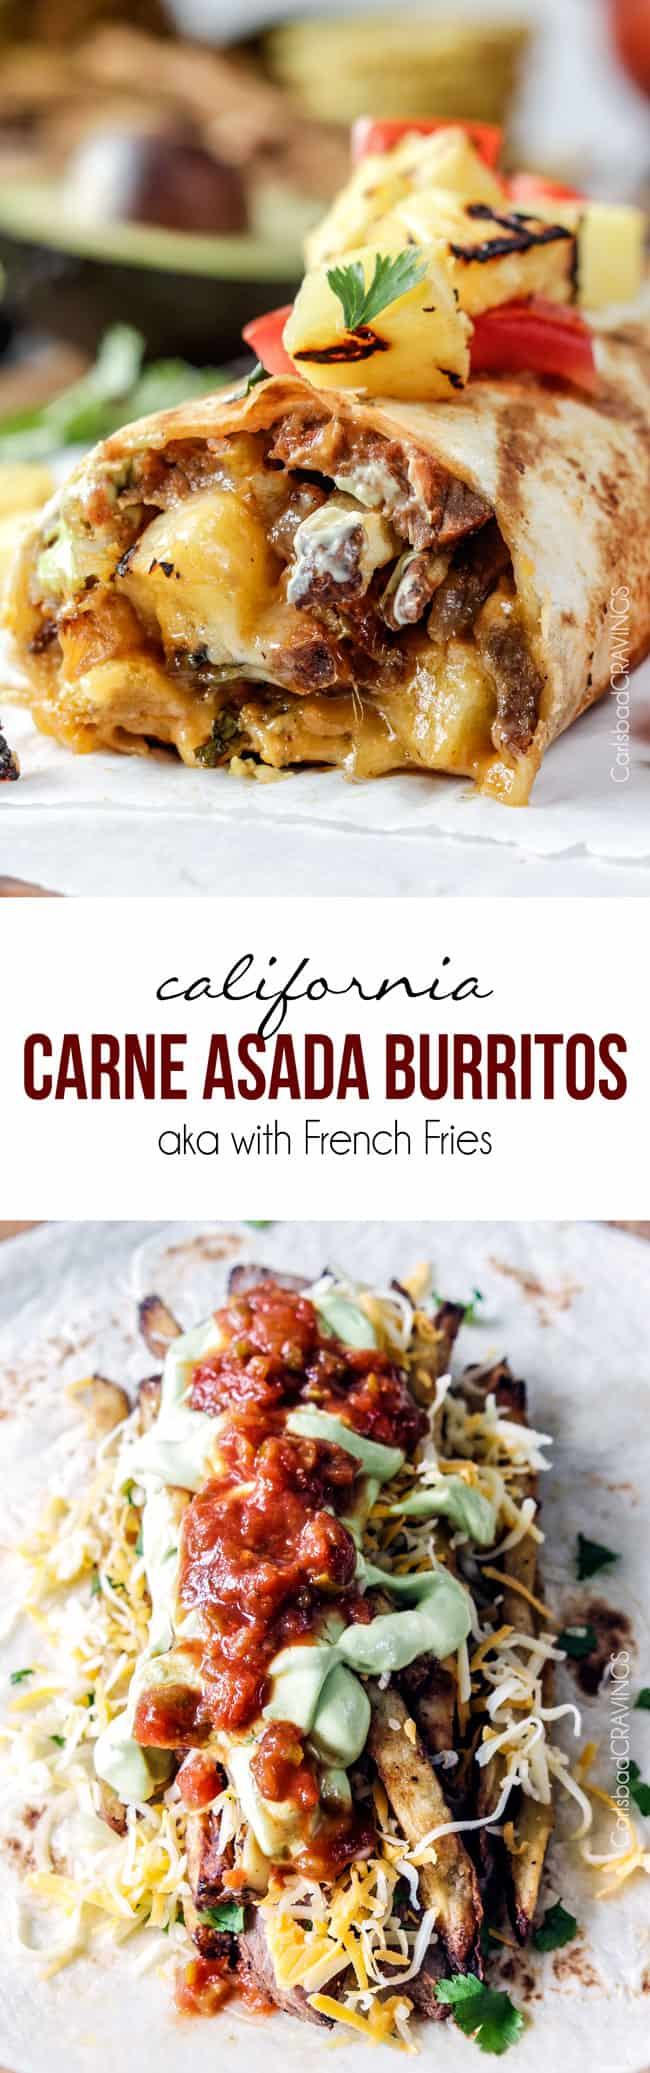 California Carne Asada Burritos With Freezer Instructions